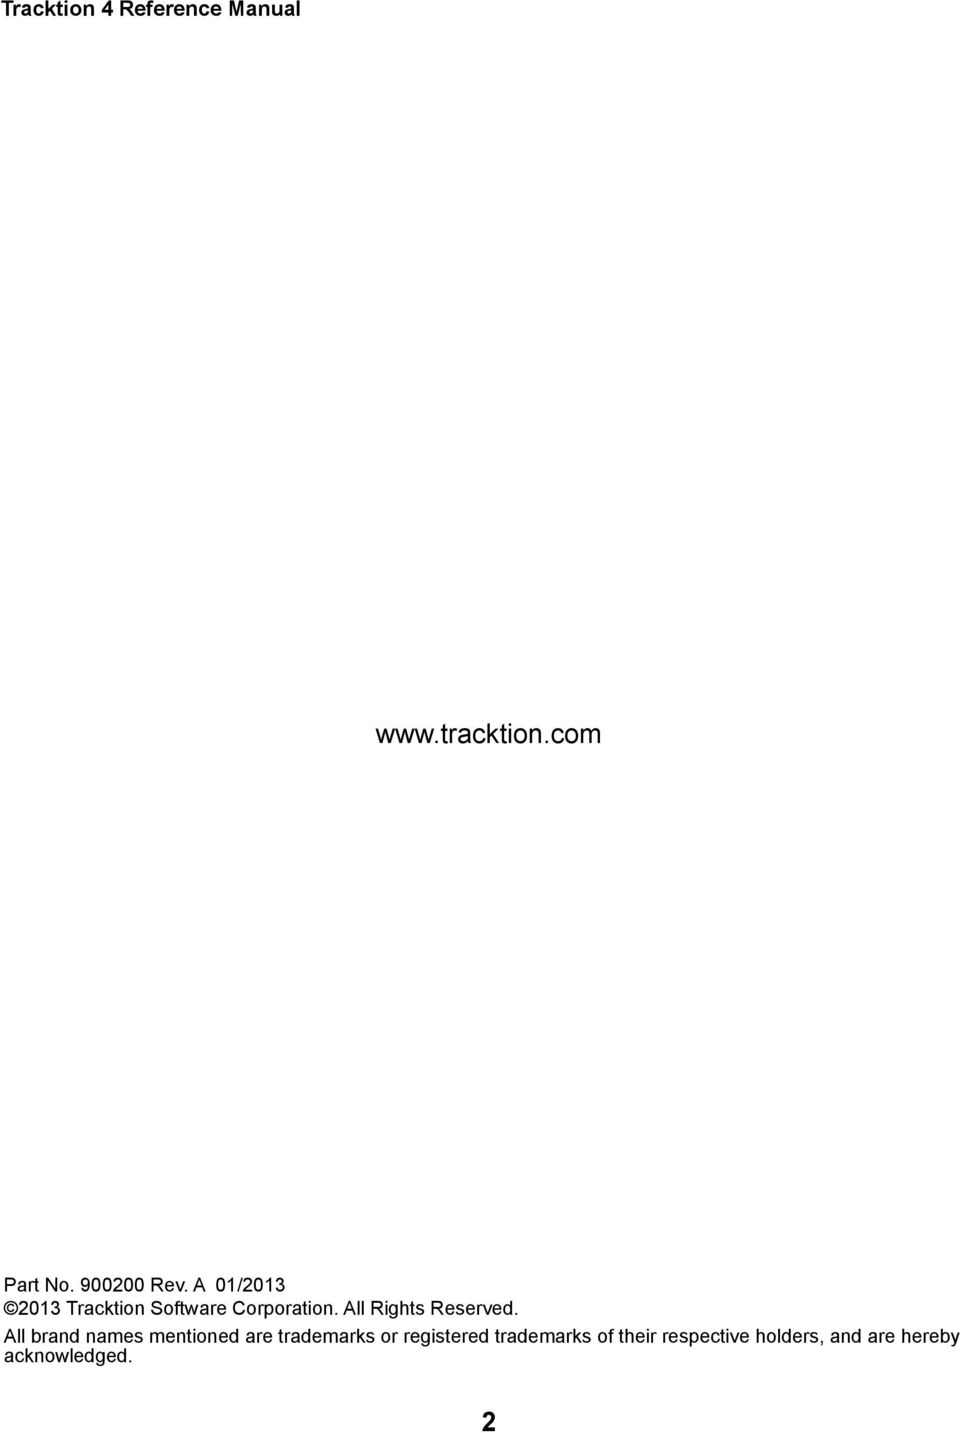 Tracktion 4 Reference Manual - PDF